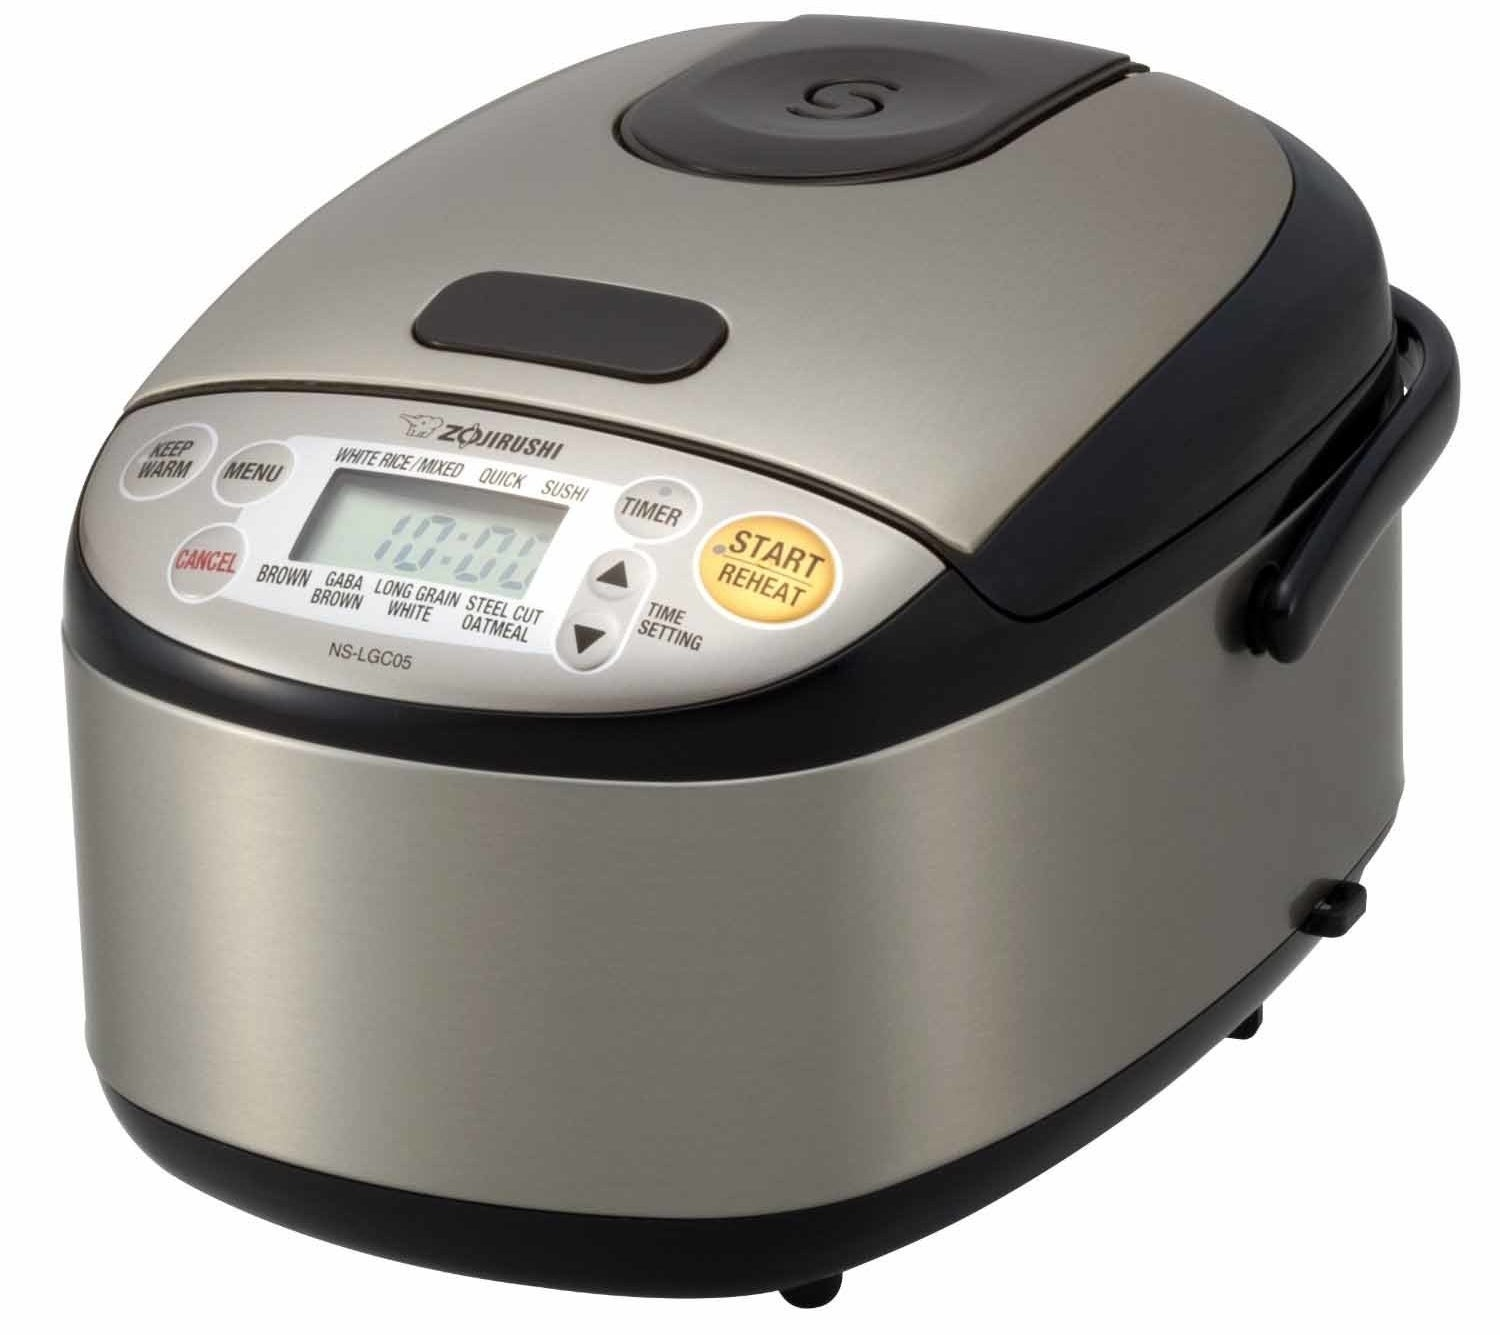 "This Zojirushi rice cooker has a three-cup capacity. It has settings for pretty much any type of rice and can also cook steel-cut oatmeal.""I always used to worry about under- or over-cooking my rice, but now I can plug my rice cooker in and let it work its magic."" —Alyssa O.Get it from Walmart for $149.95 or from Jet for $199.95."